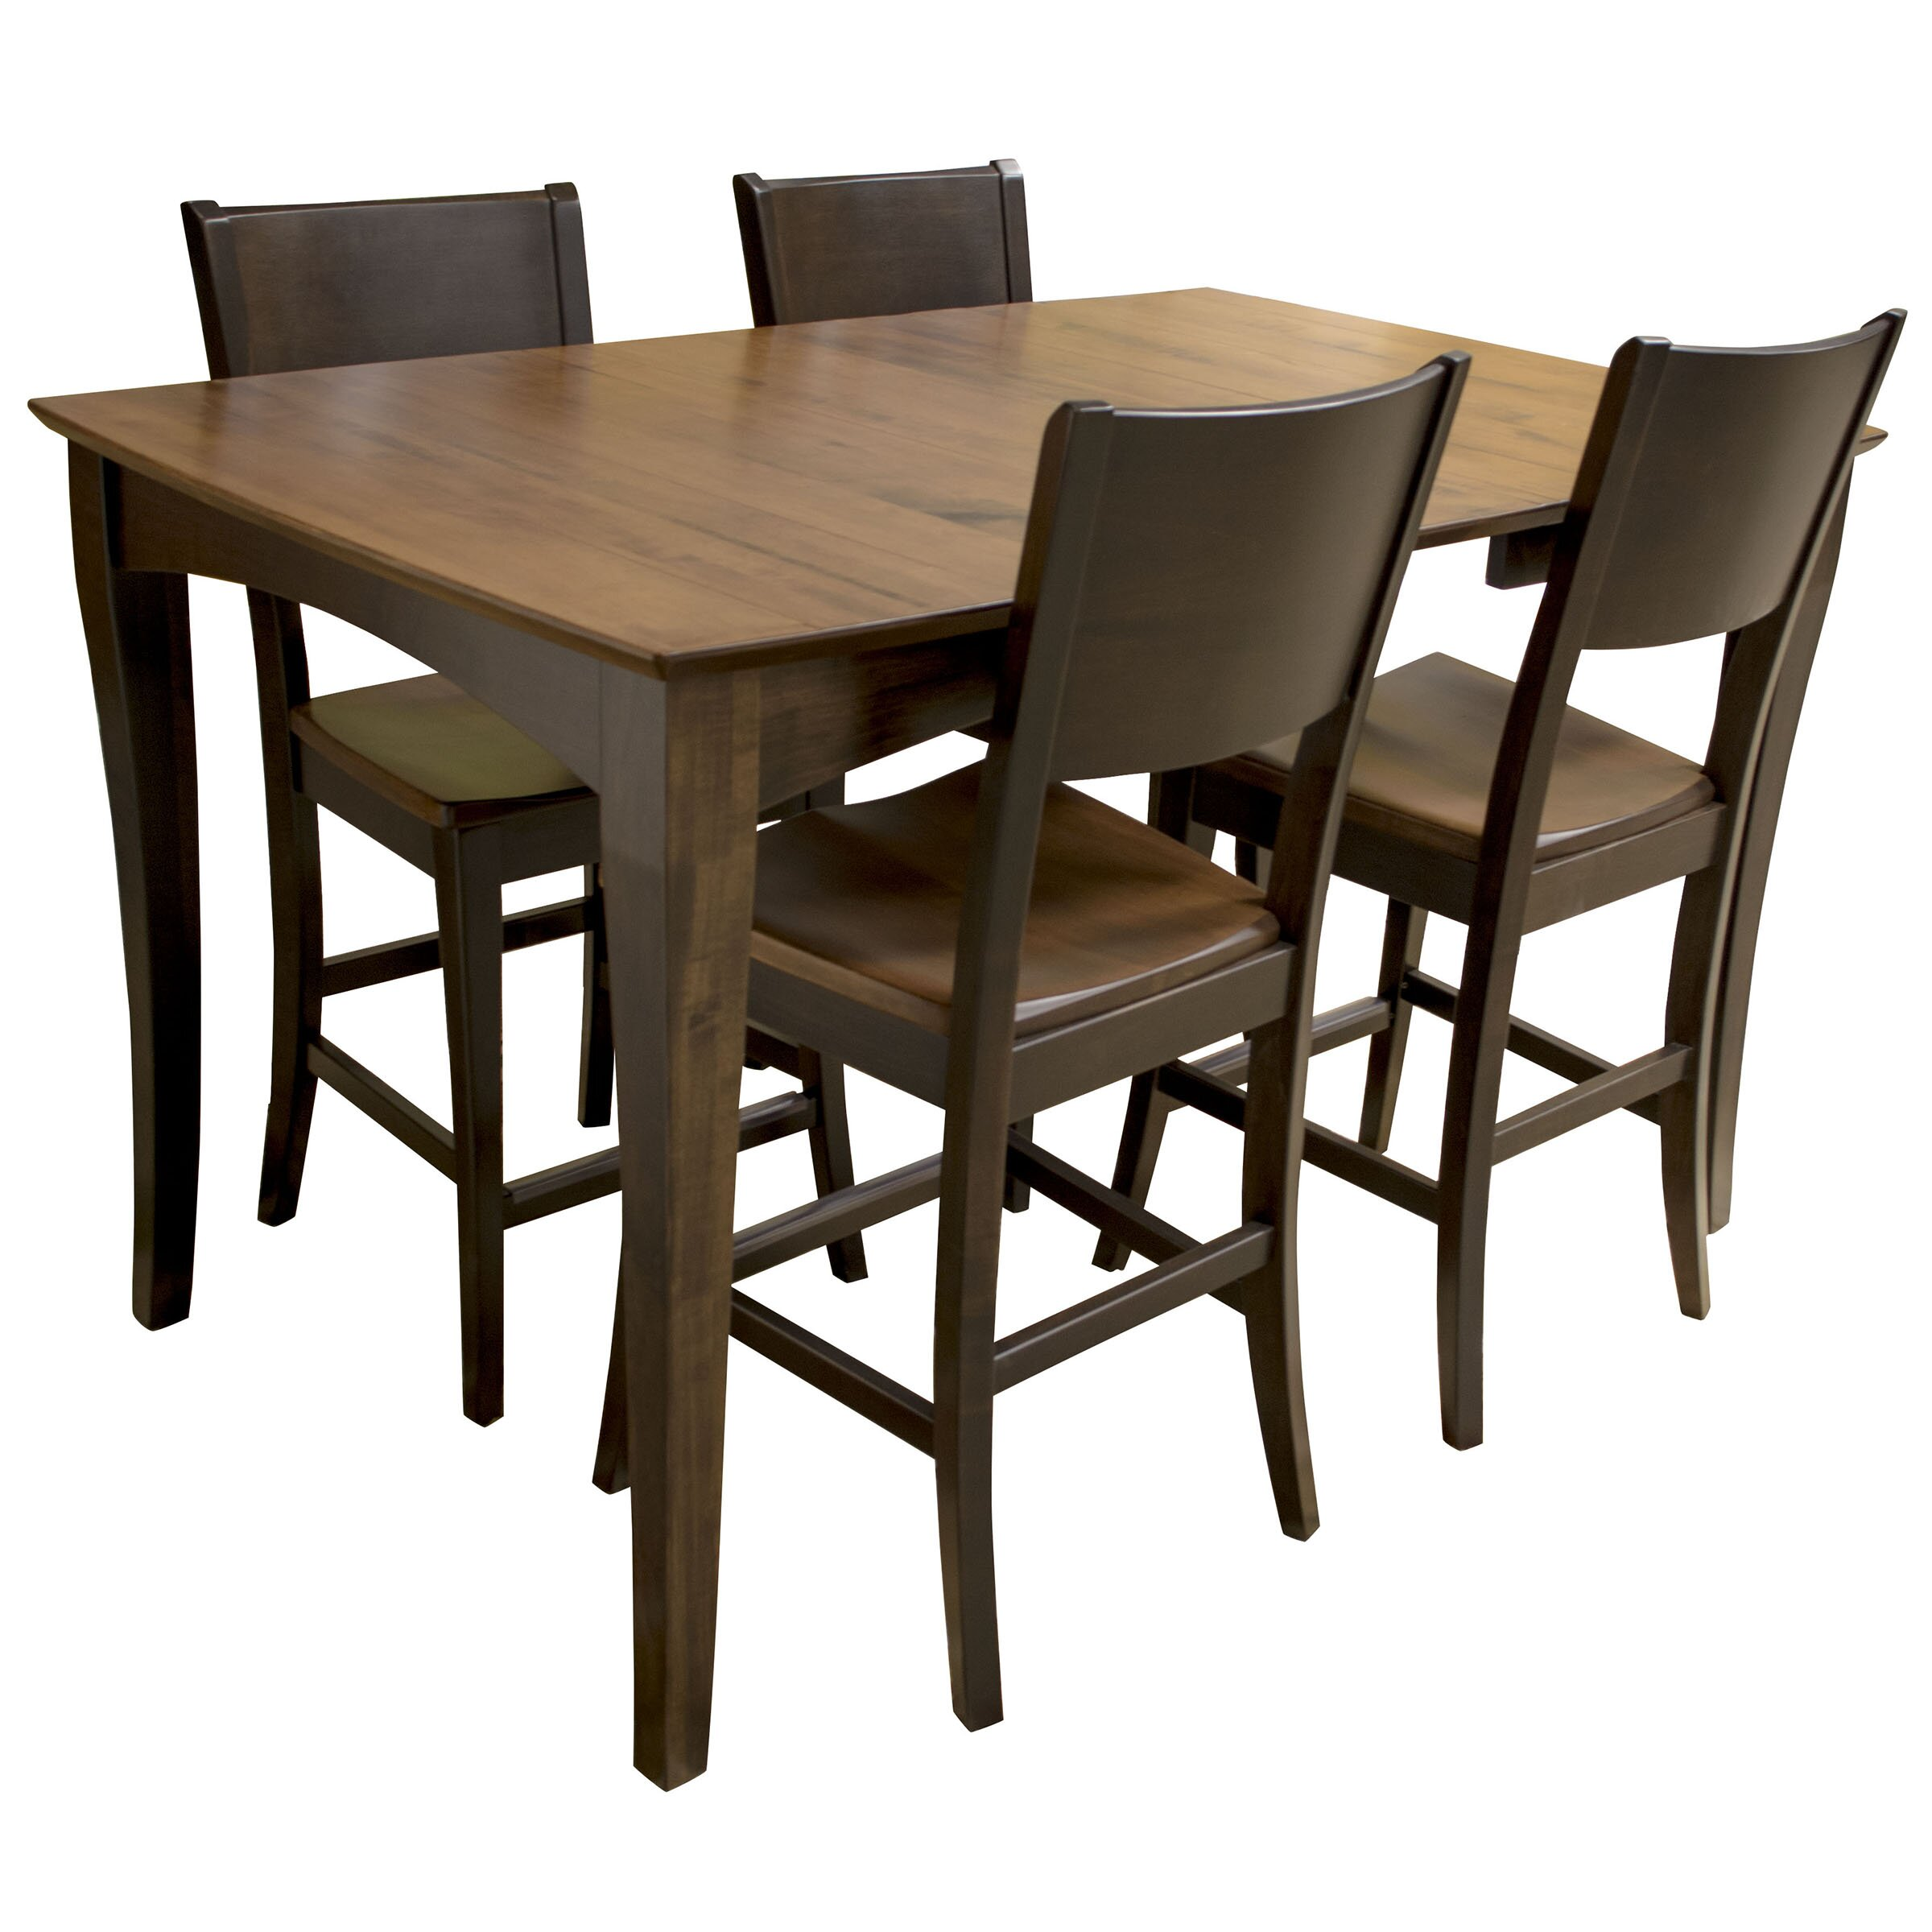 Amerihome 5 piece counter height dining set wayfair for Standard dining room table height